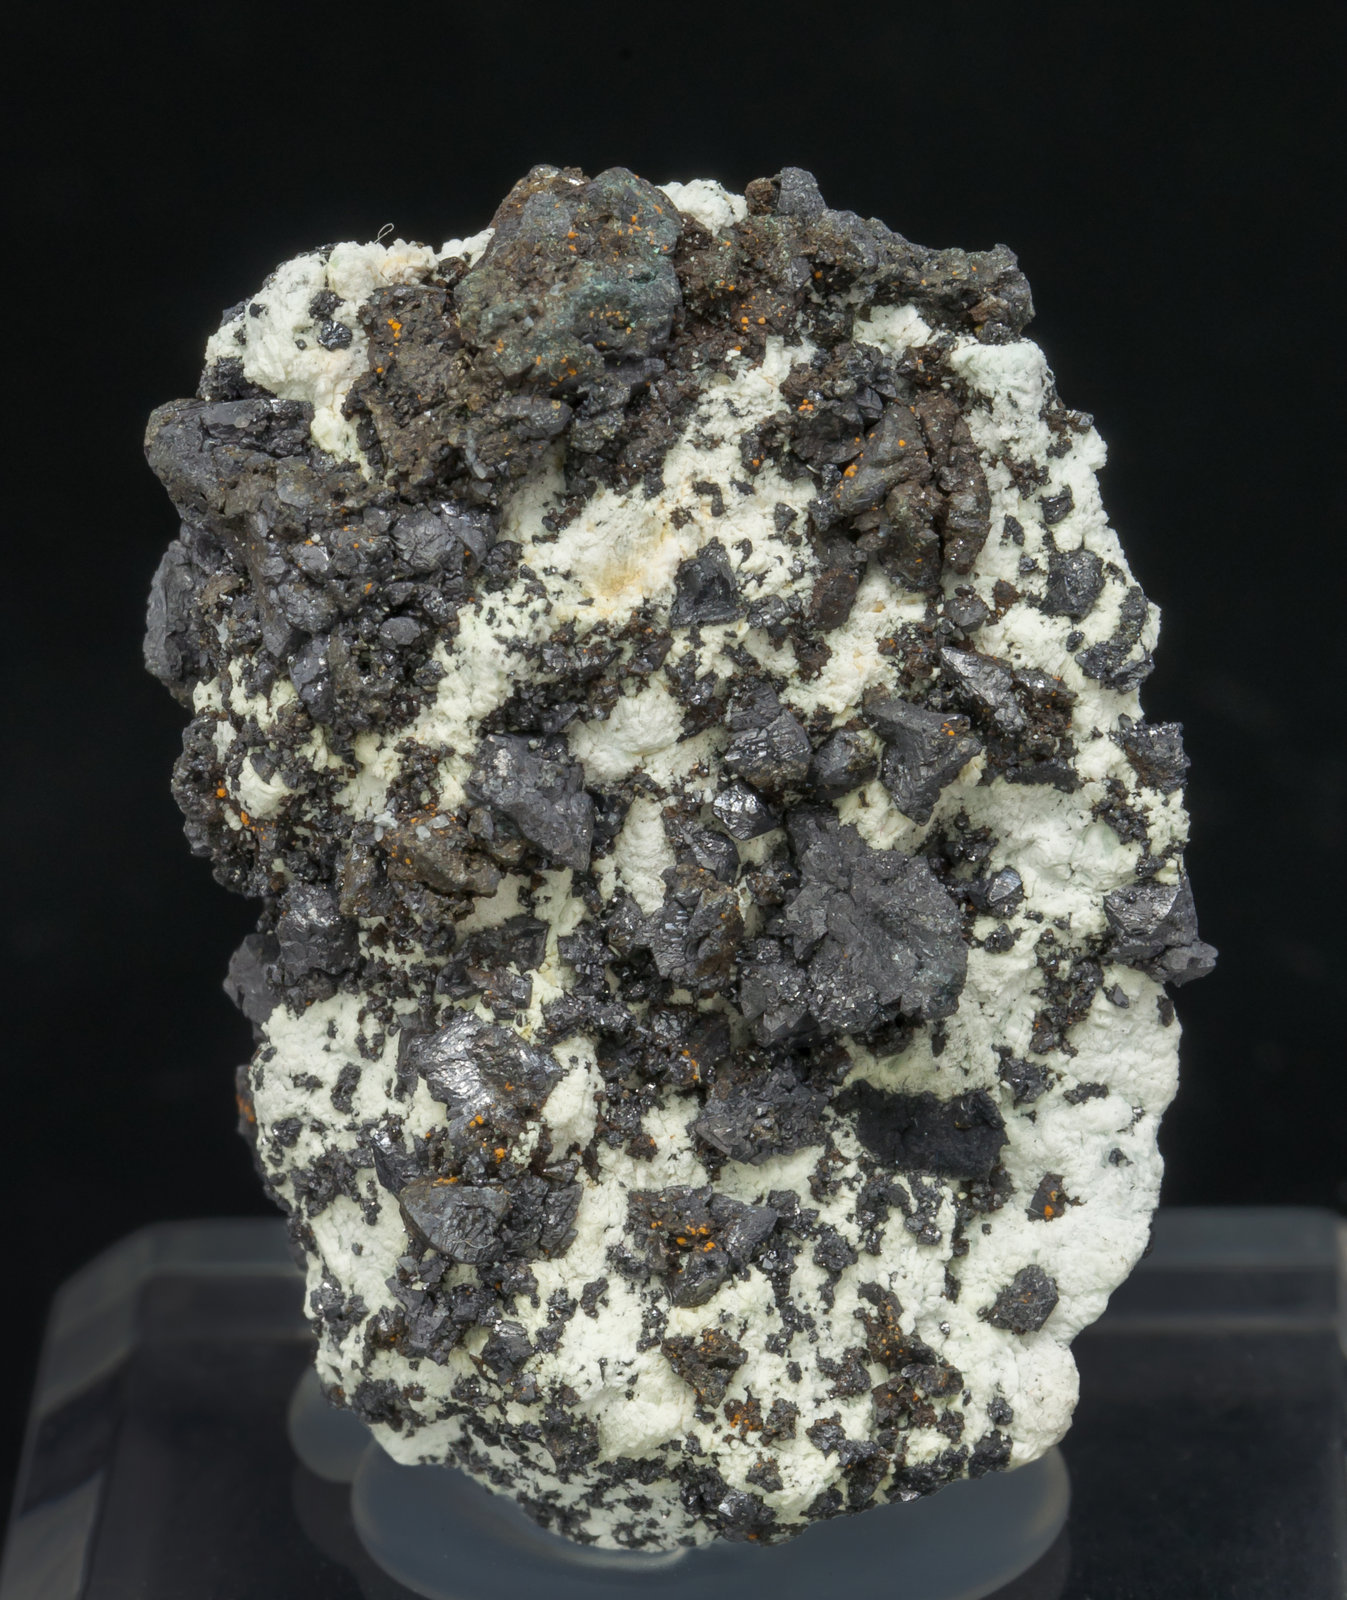 specimens/s_imagesAE3/Villamaninite-NE11AE3f.jpg